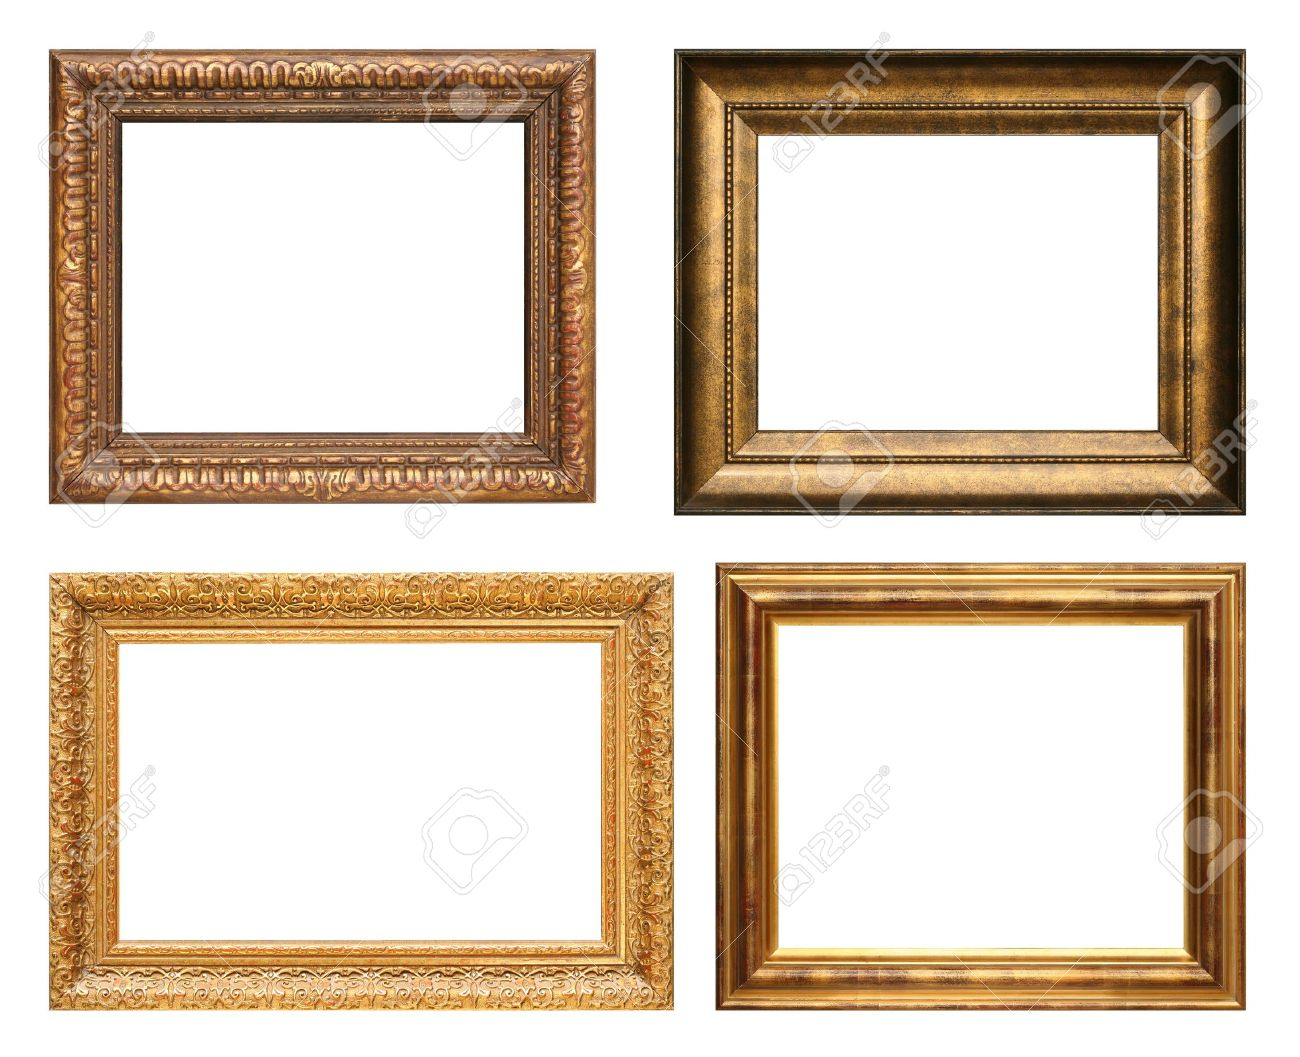 Antique Picture Frames. High Resolution. Stock Photo, Picture And ...